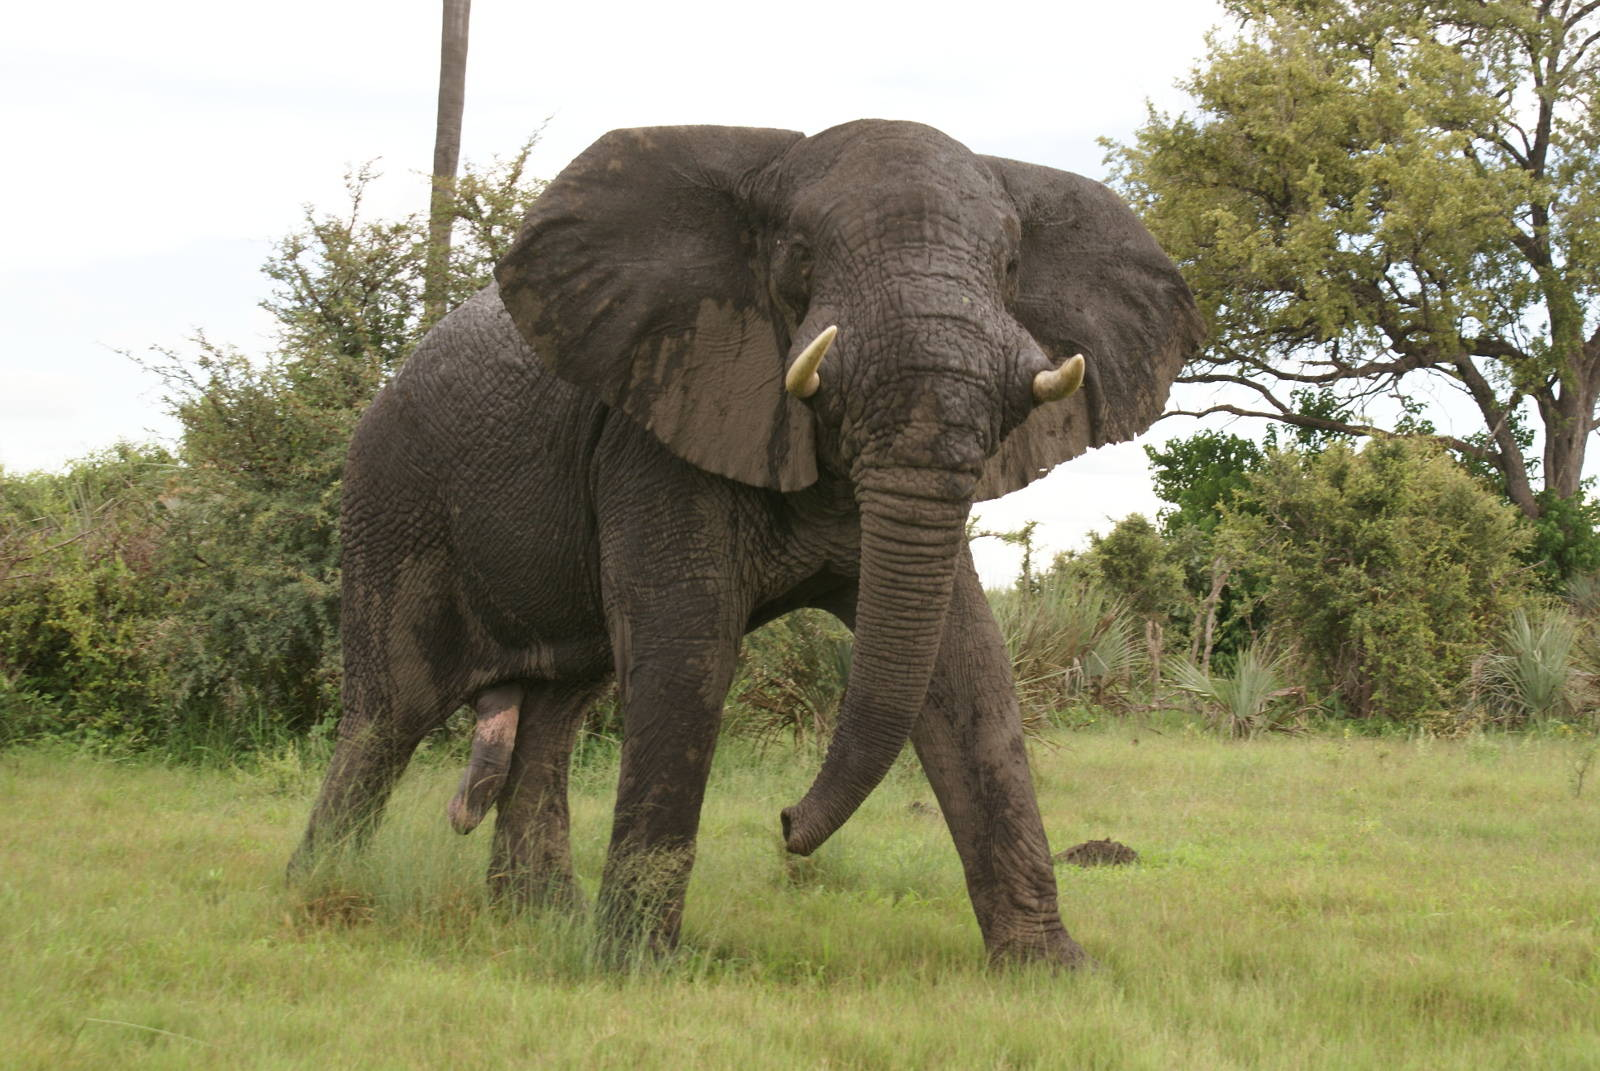 7 Organizations Working to End Human-Animal Conflict